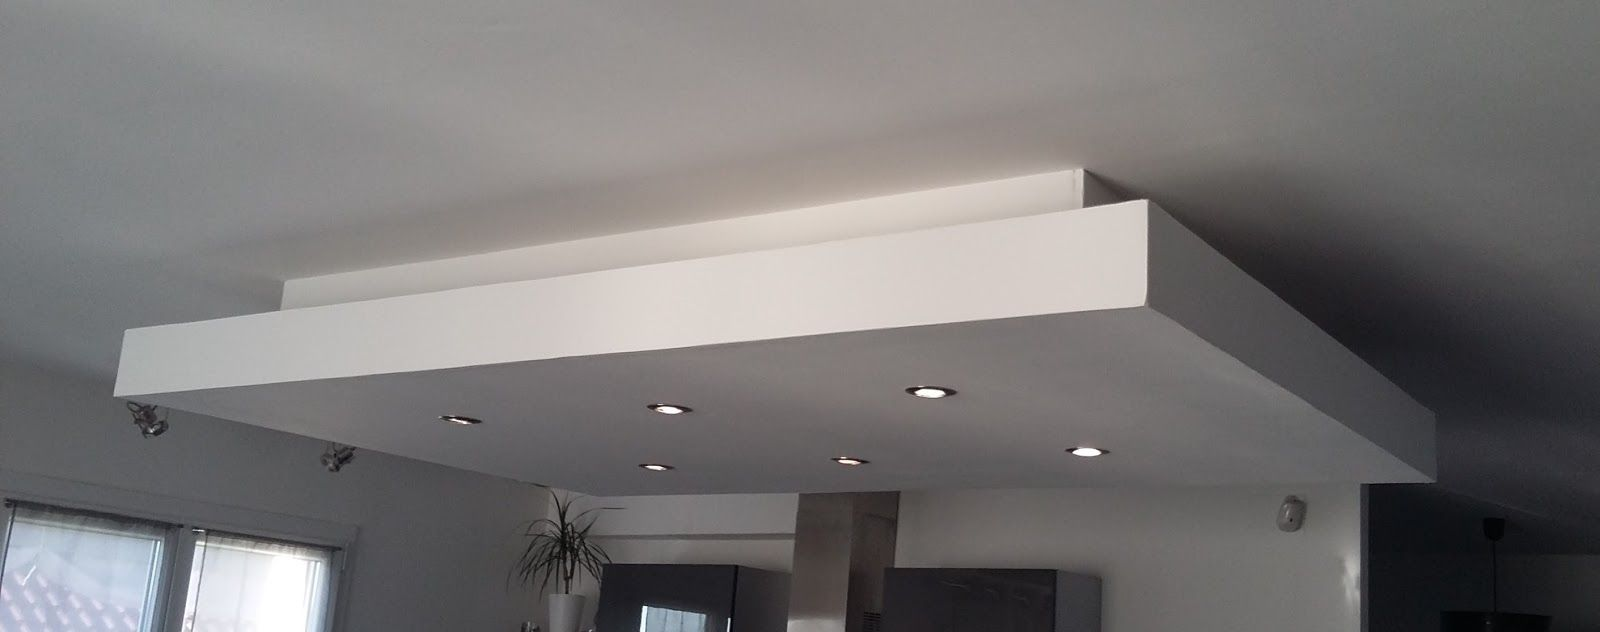 D roch plafond decaissement descendu suspendu placo for Plafond suspendu lumineux